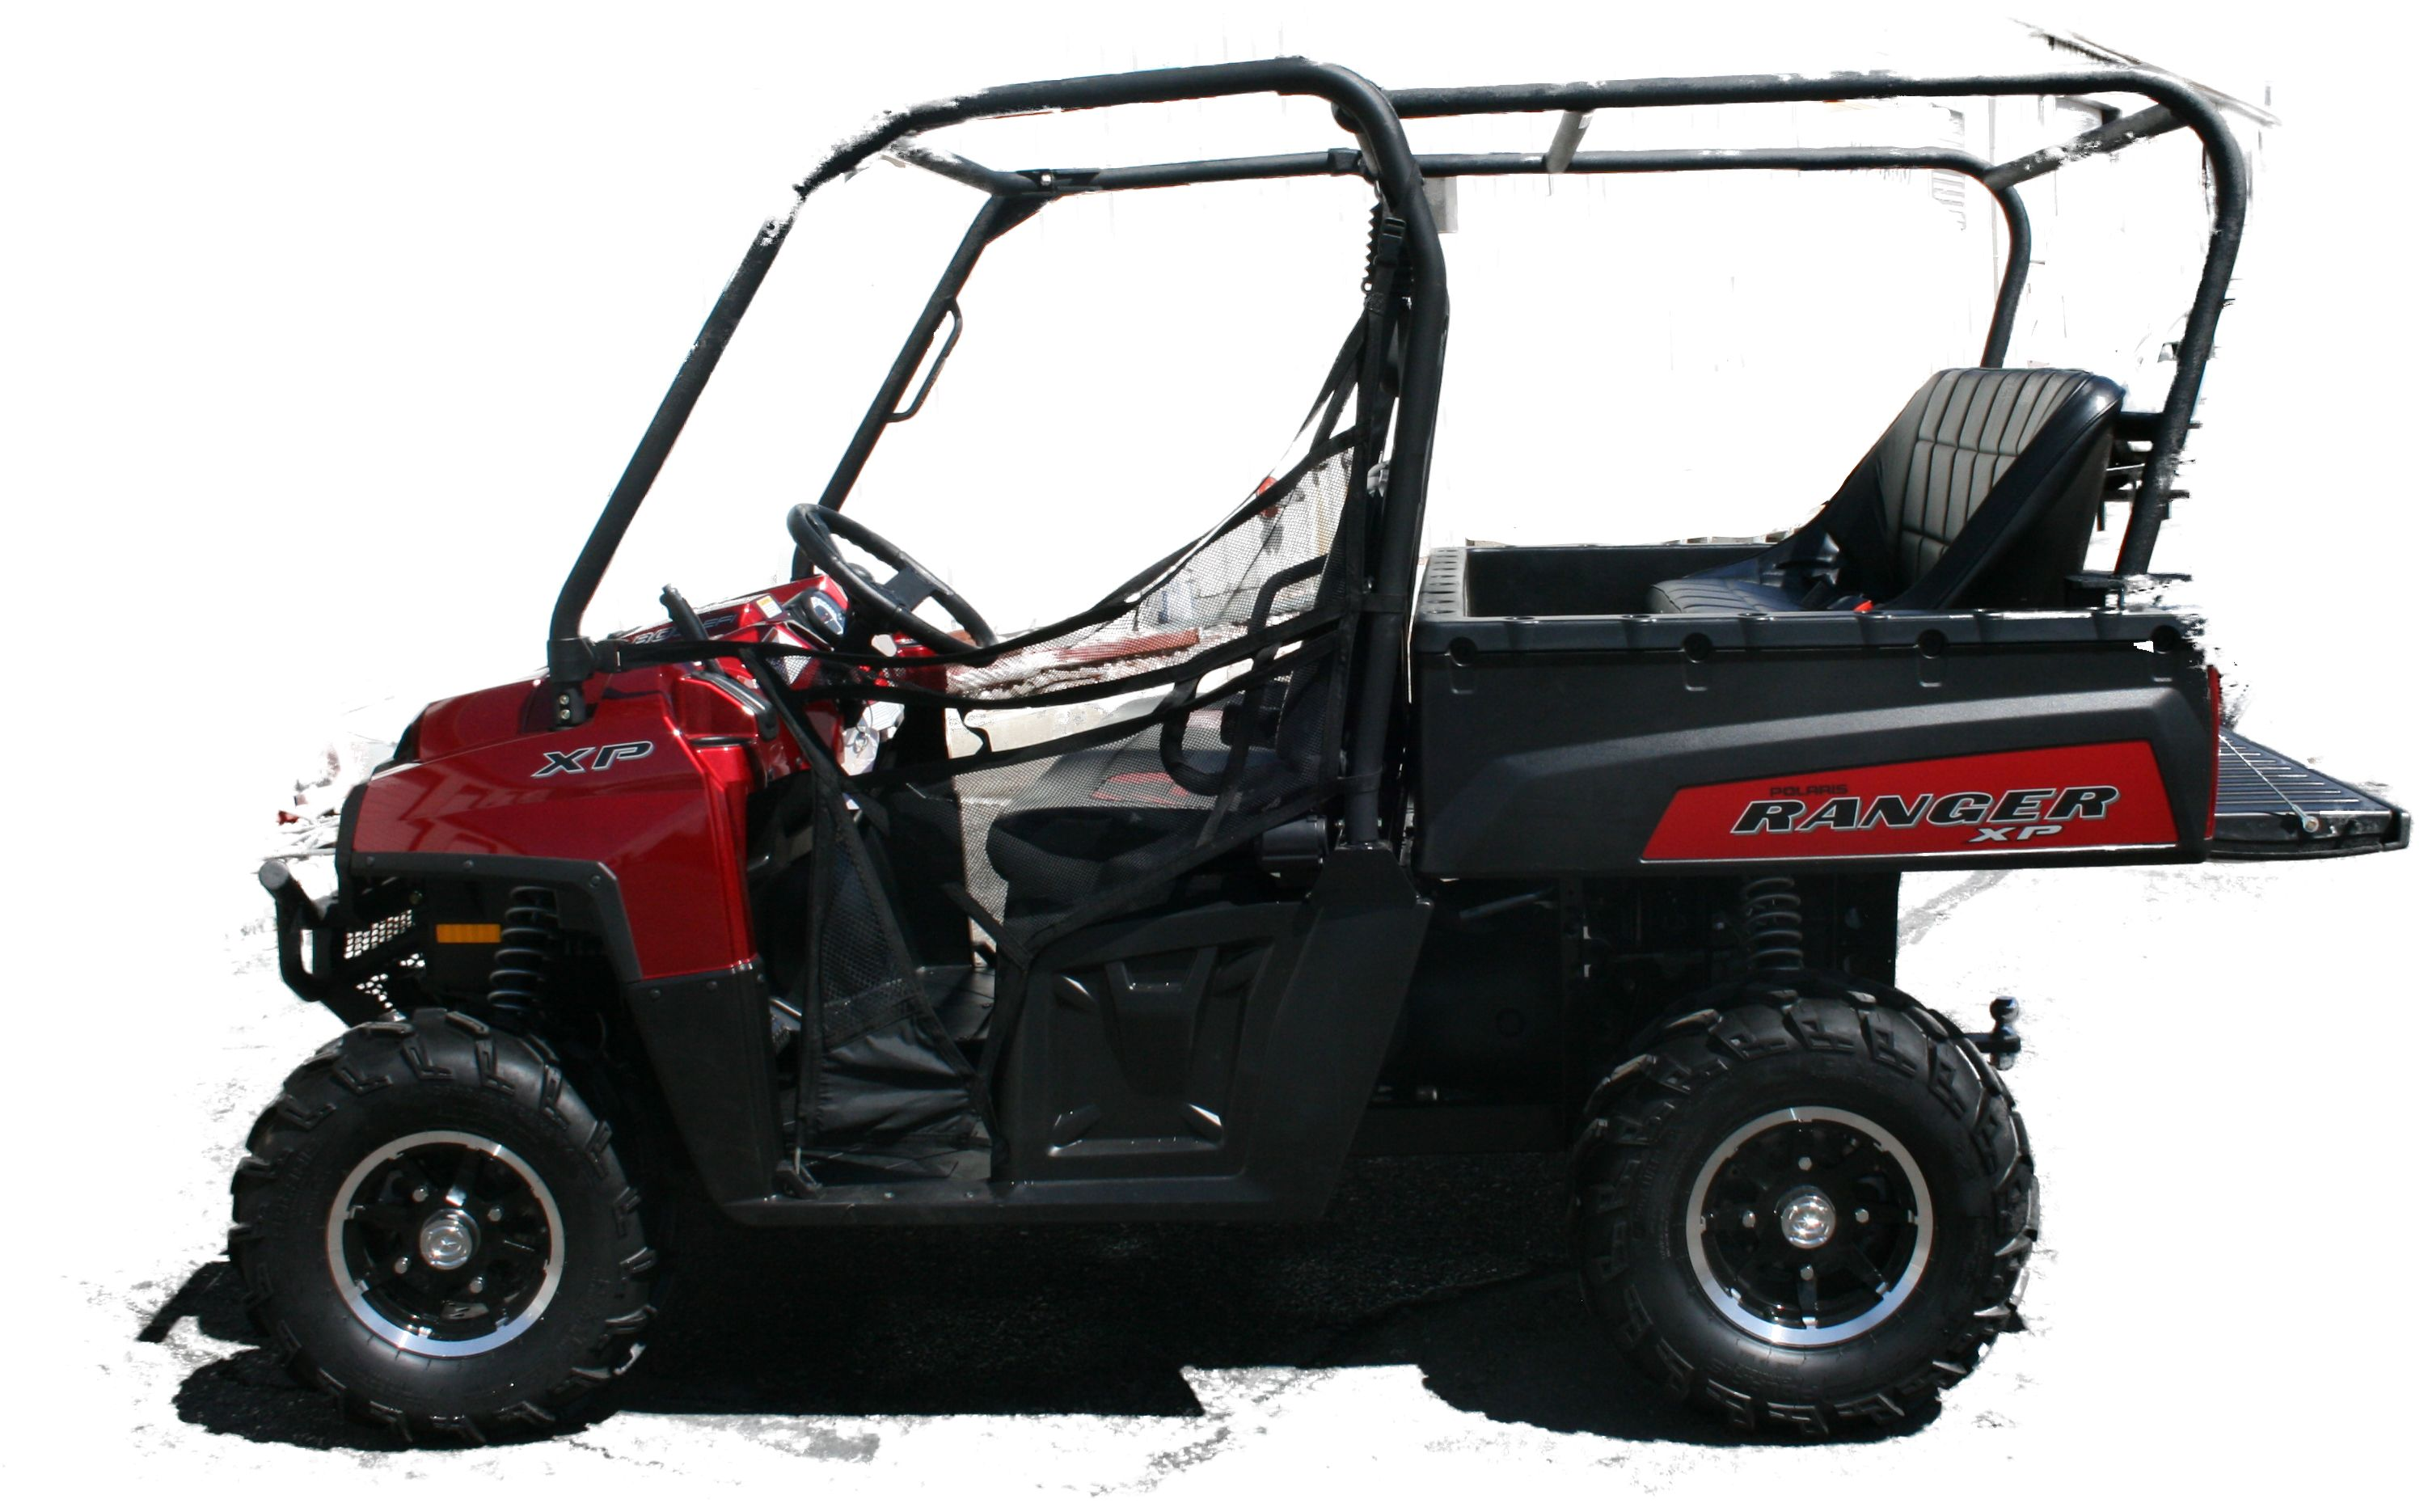 small resolution of polaris ranger 800 back seat and roll cage kit designed to come in and out in minutes your kit includes polaris ranger 800 roll cage 42 bench seat 3 4